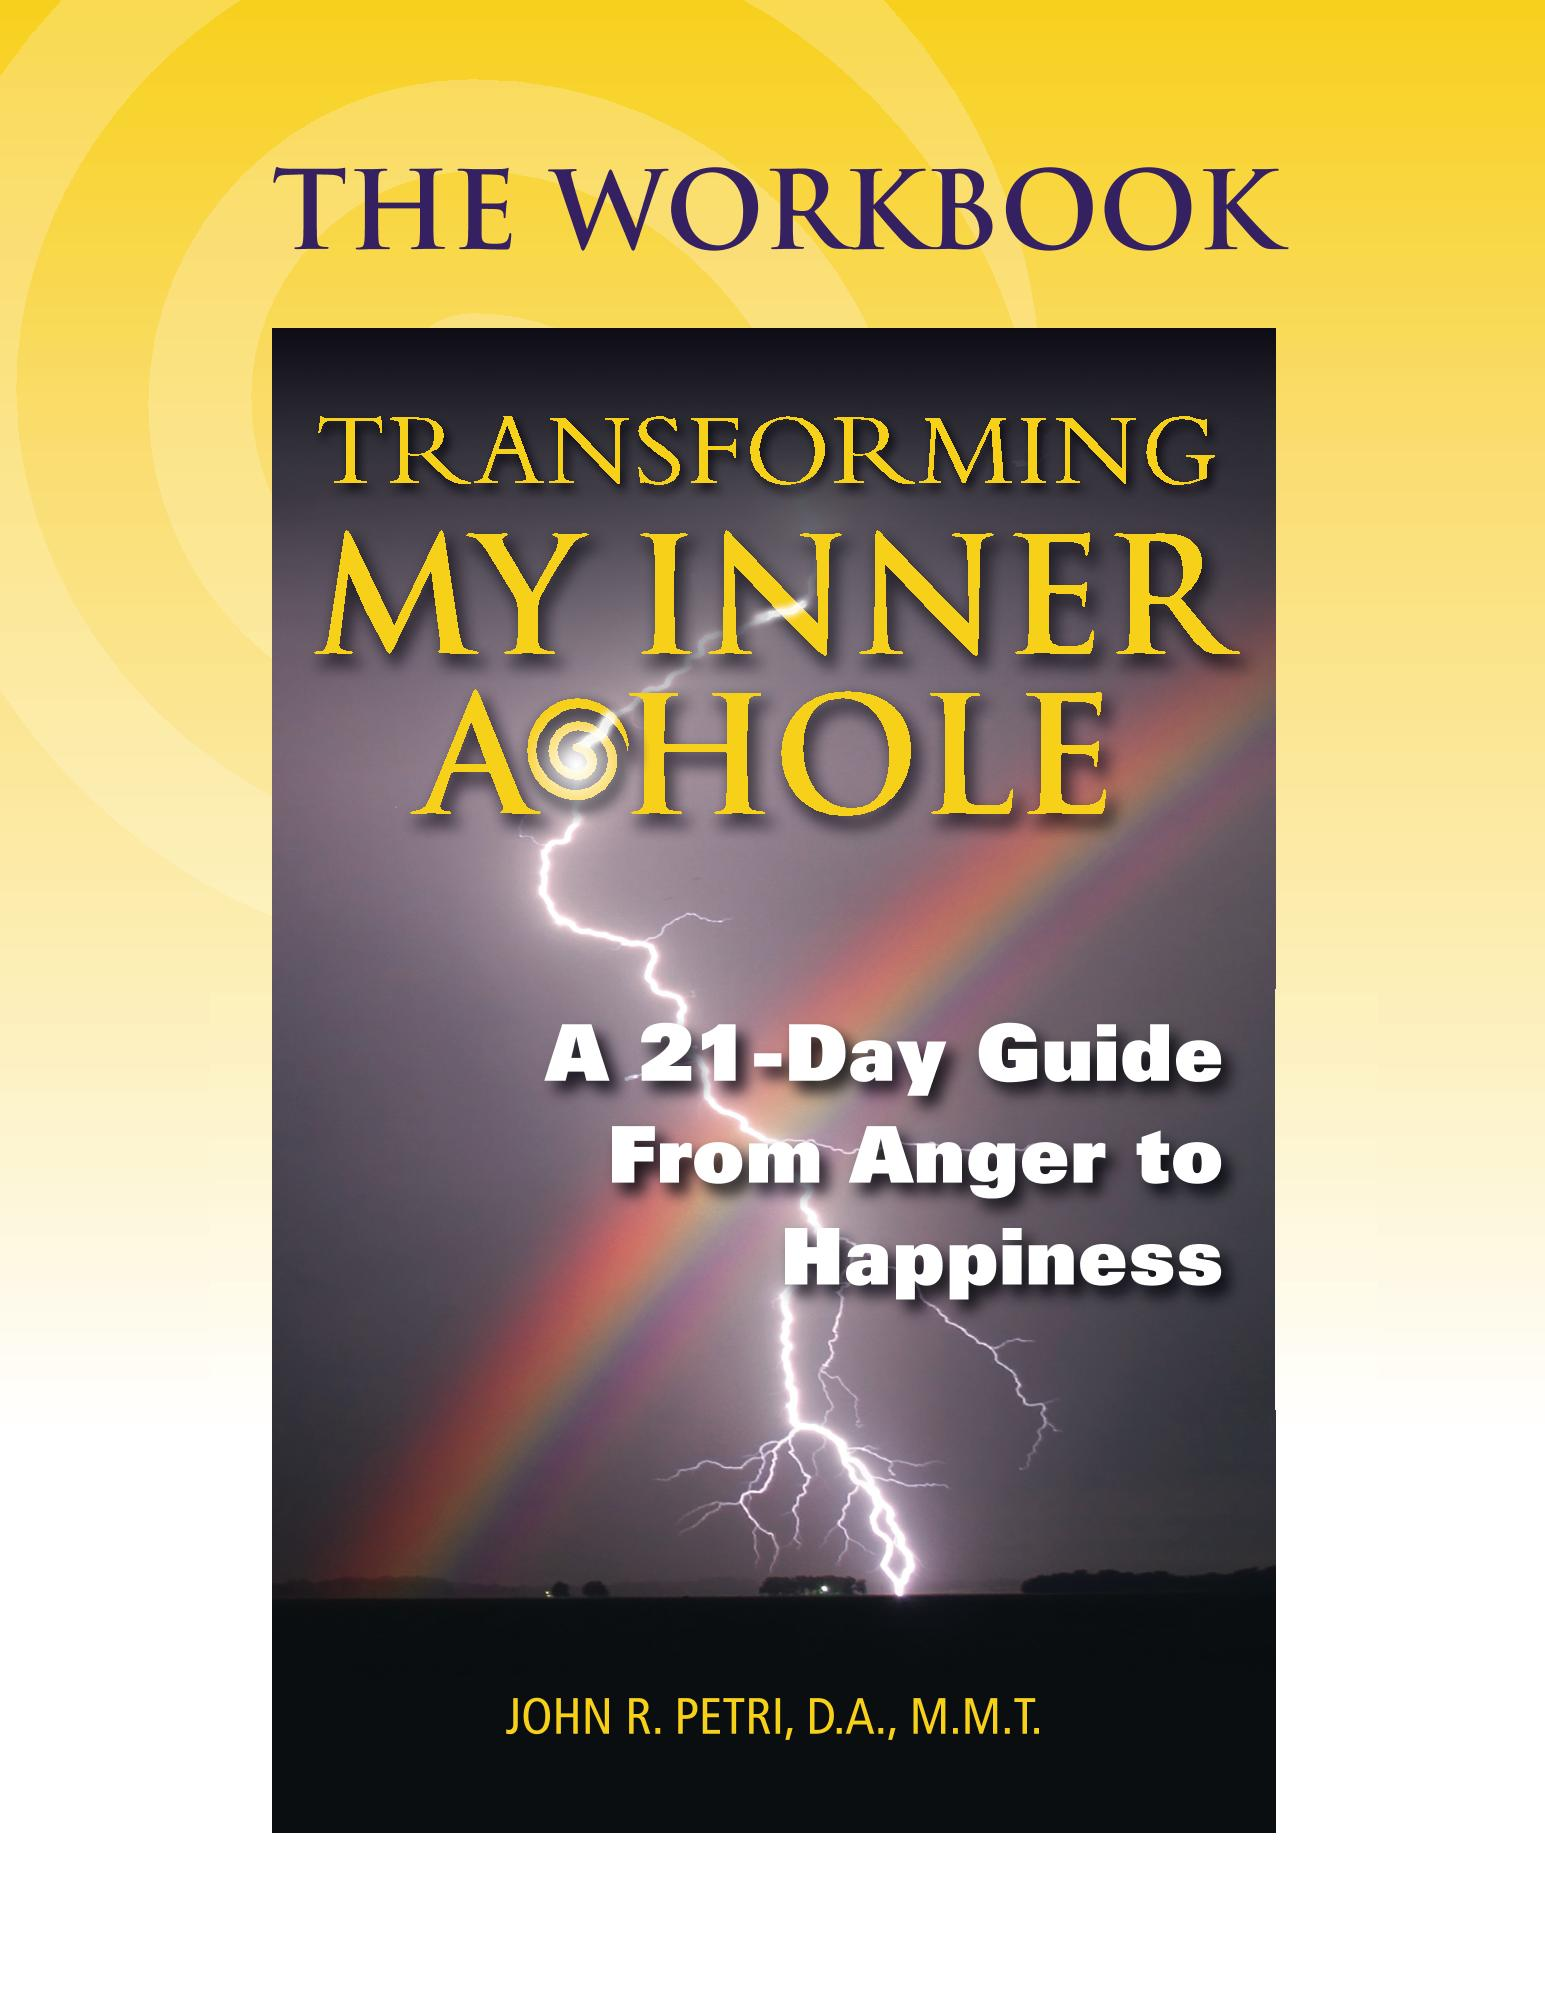 Tools that can take you from being an Angry Guy to a Happy Guy in just 21 days.